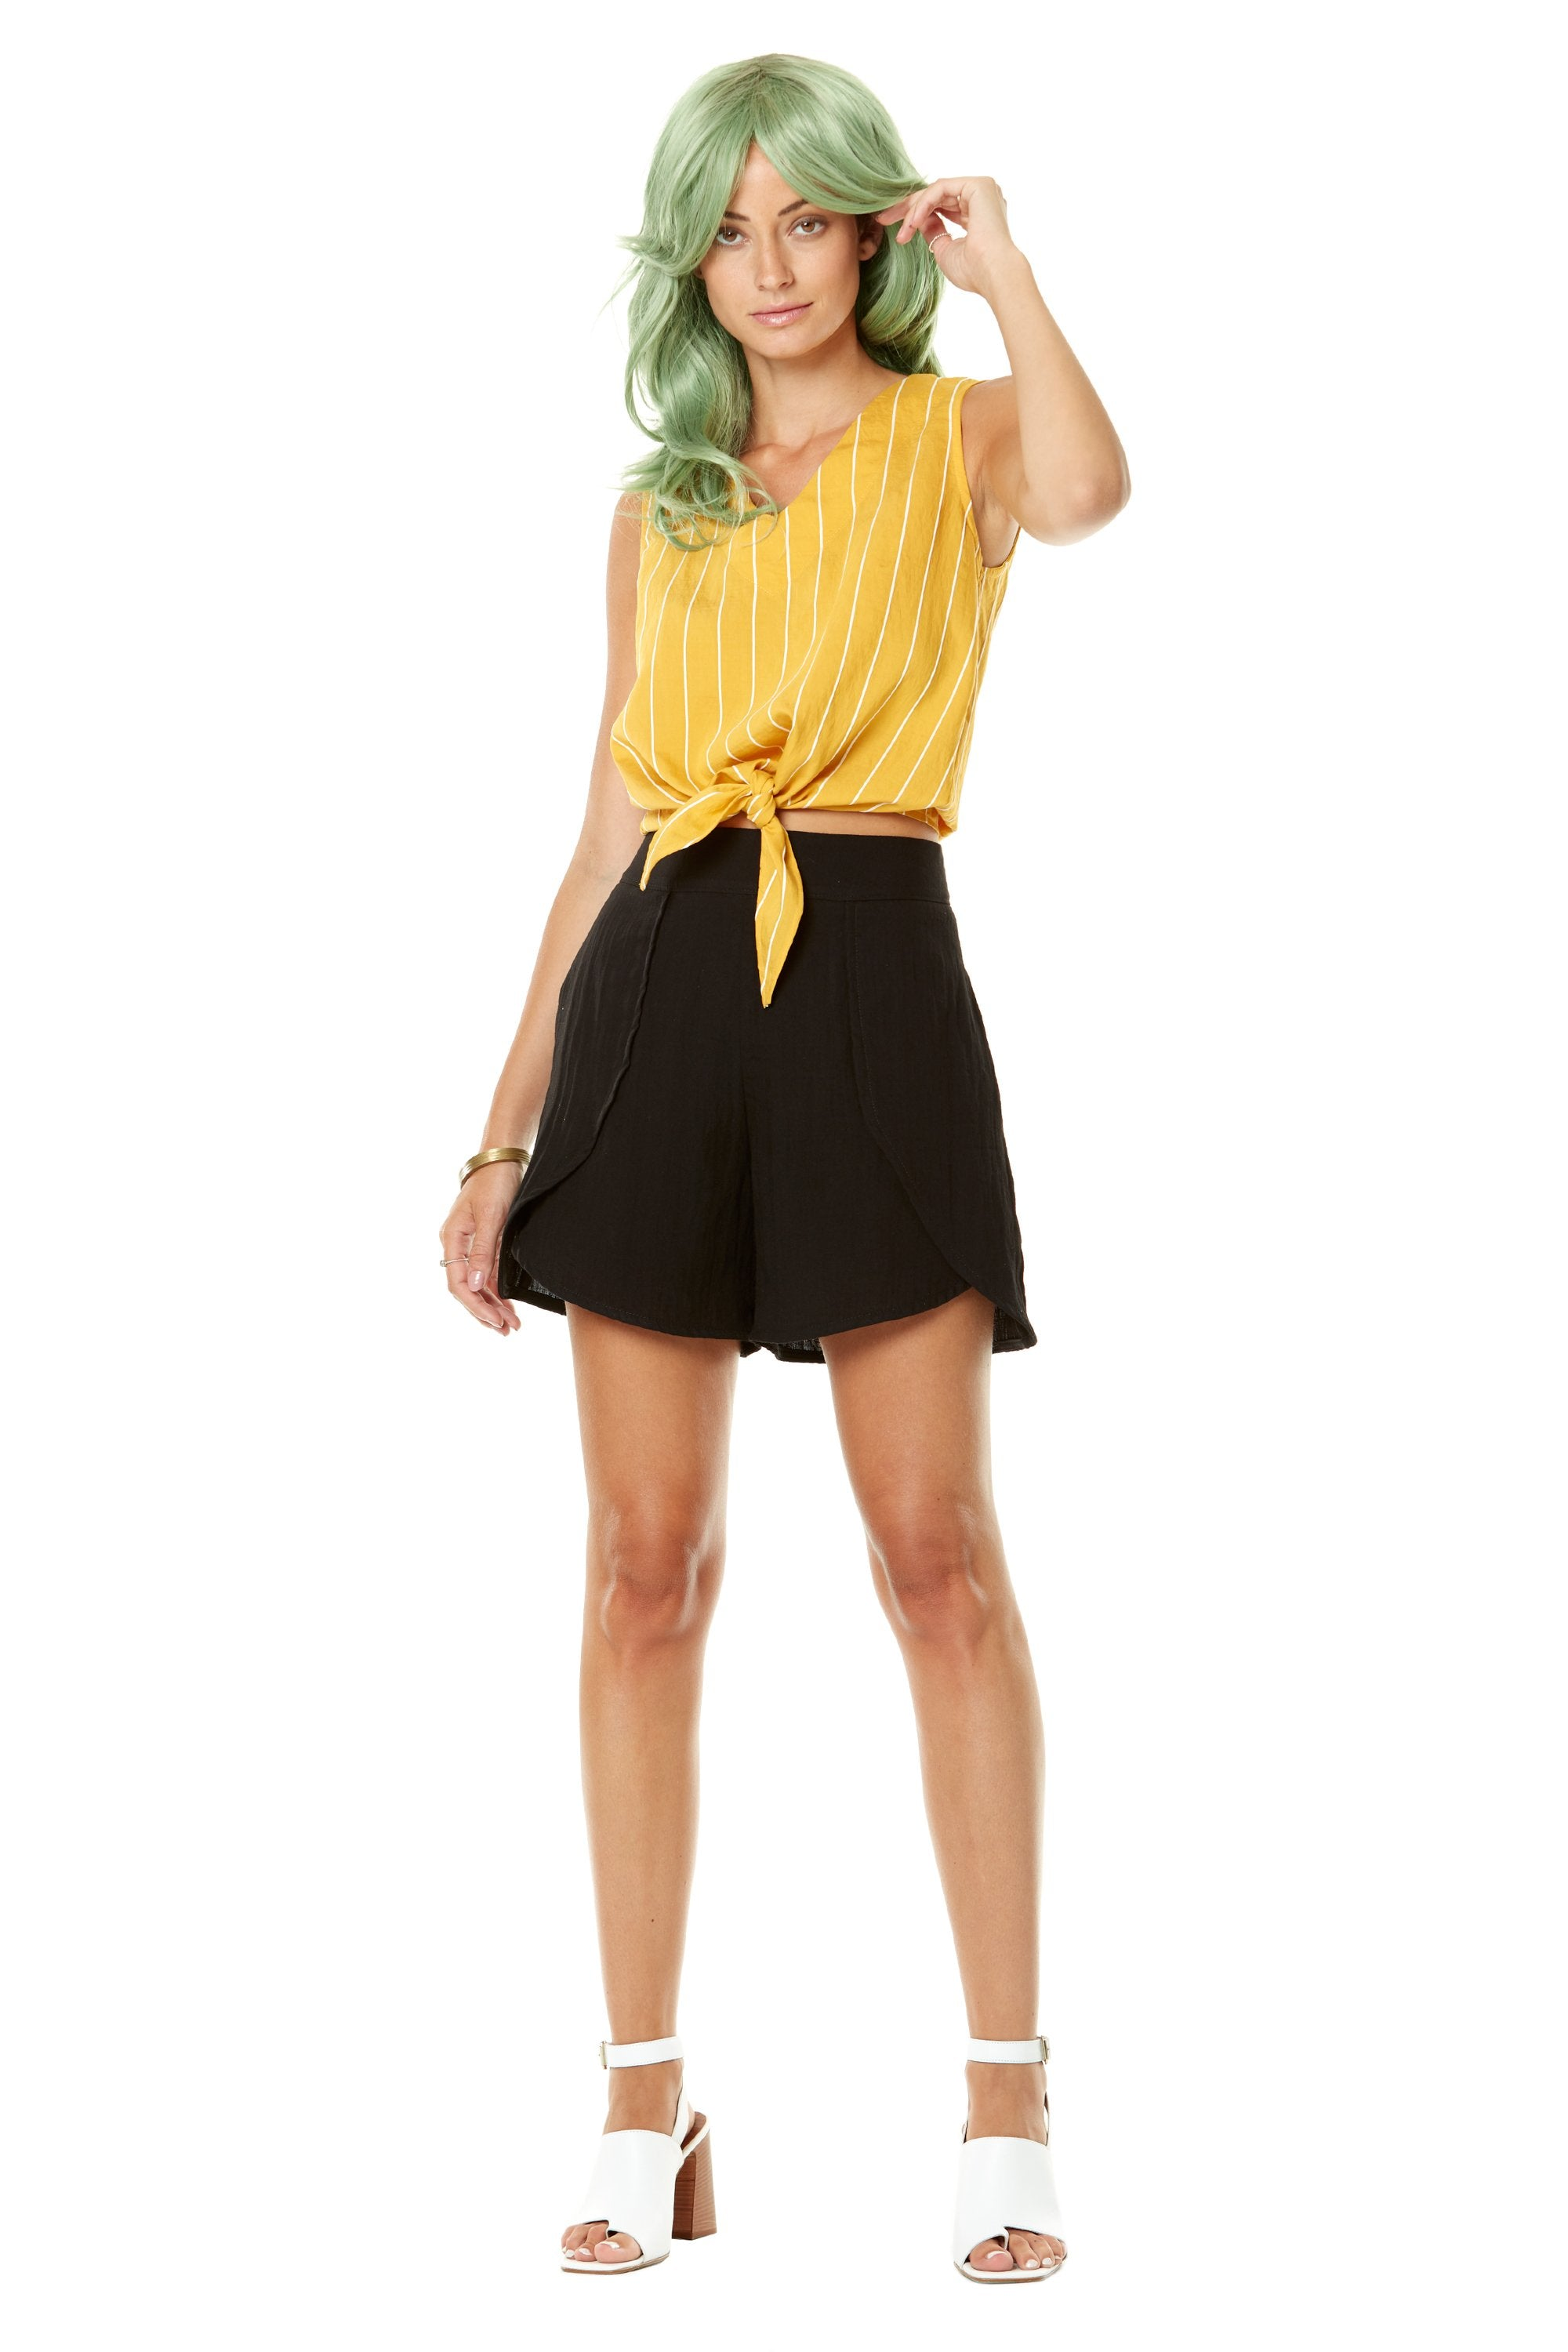 Piruleta Top by Annie 50, yellow, striped, sleeveless, bow at hem, loop button closure at back, sizes XS-L, made in Quebec